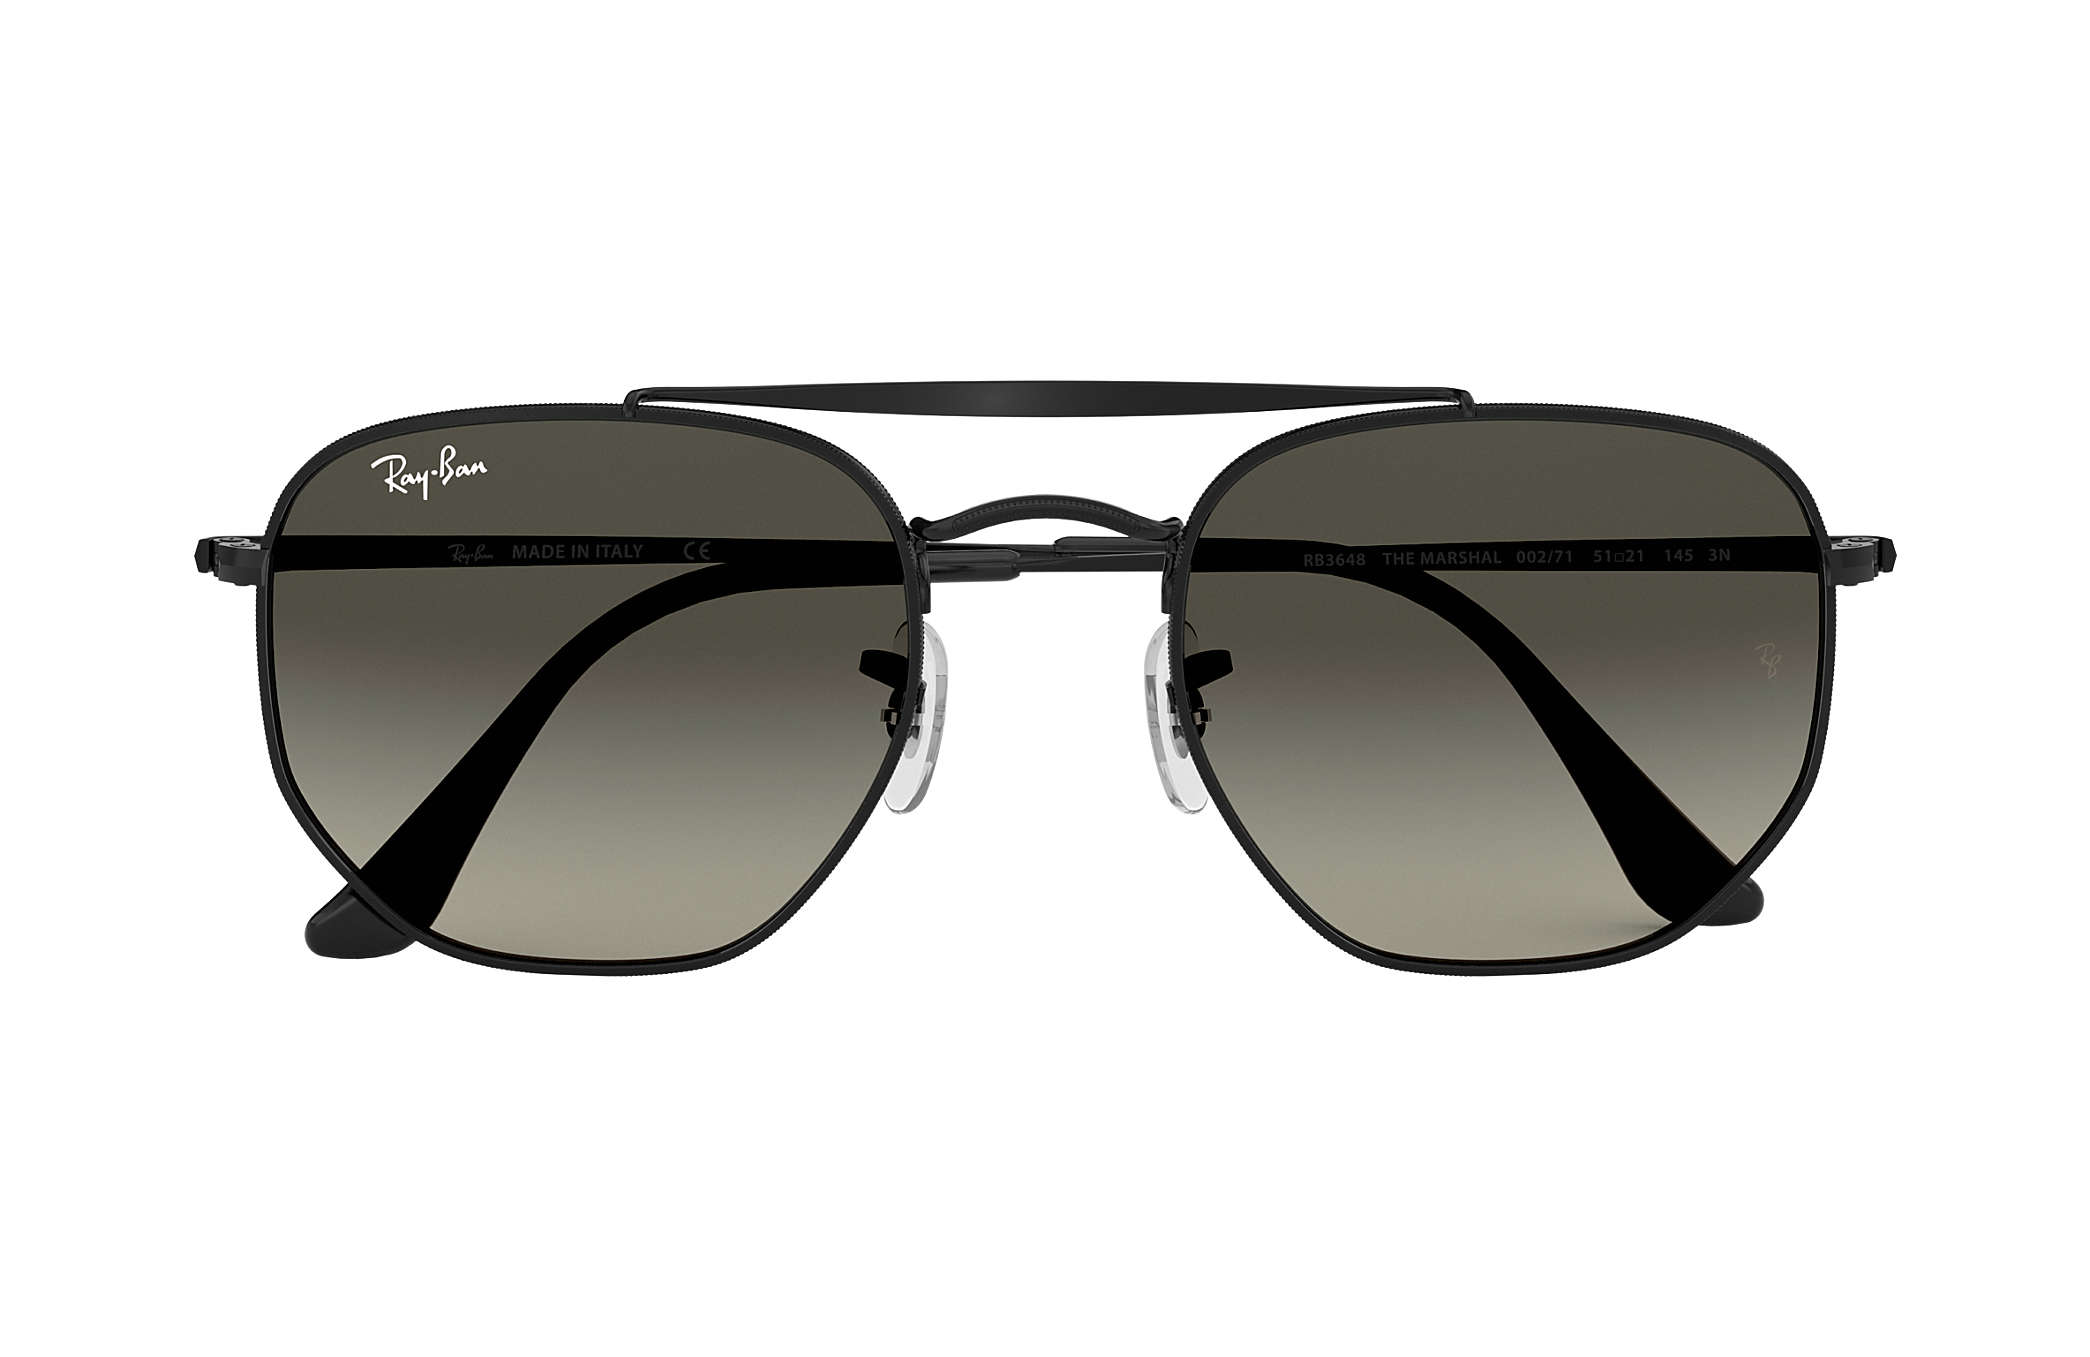 74fac005f88fa Ray-Ban Marshal RB3648 Black - Metal - Grey Lenses - 0RB3648002 7154 ...